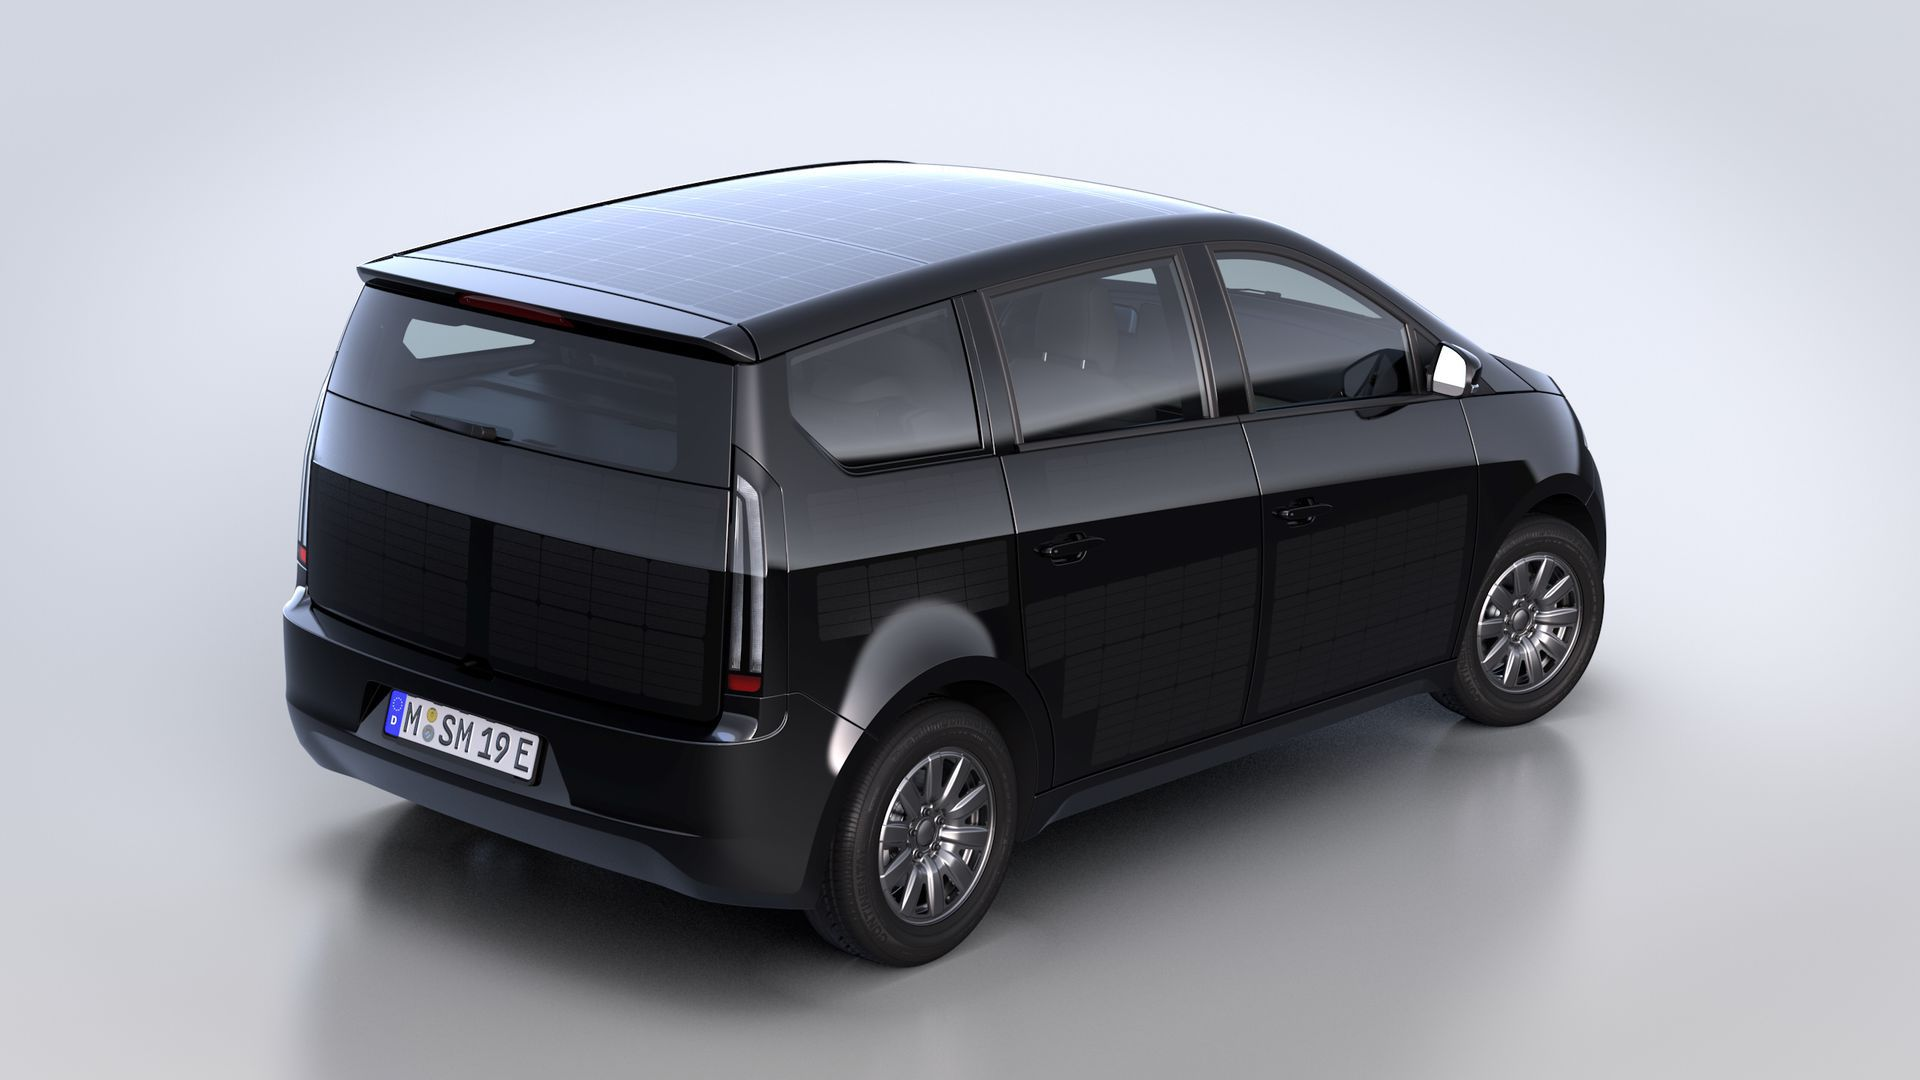 German startup Sono Motors teases solar-powered electric vehicle